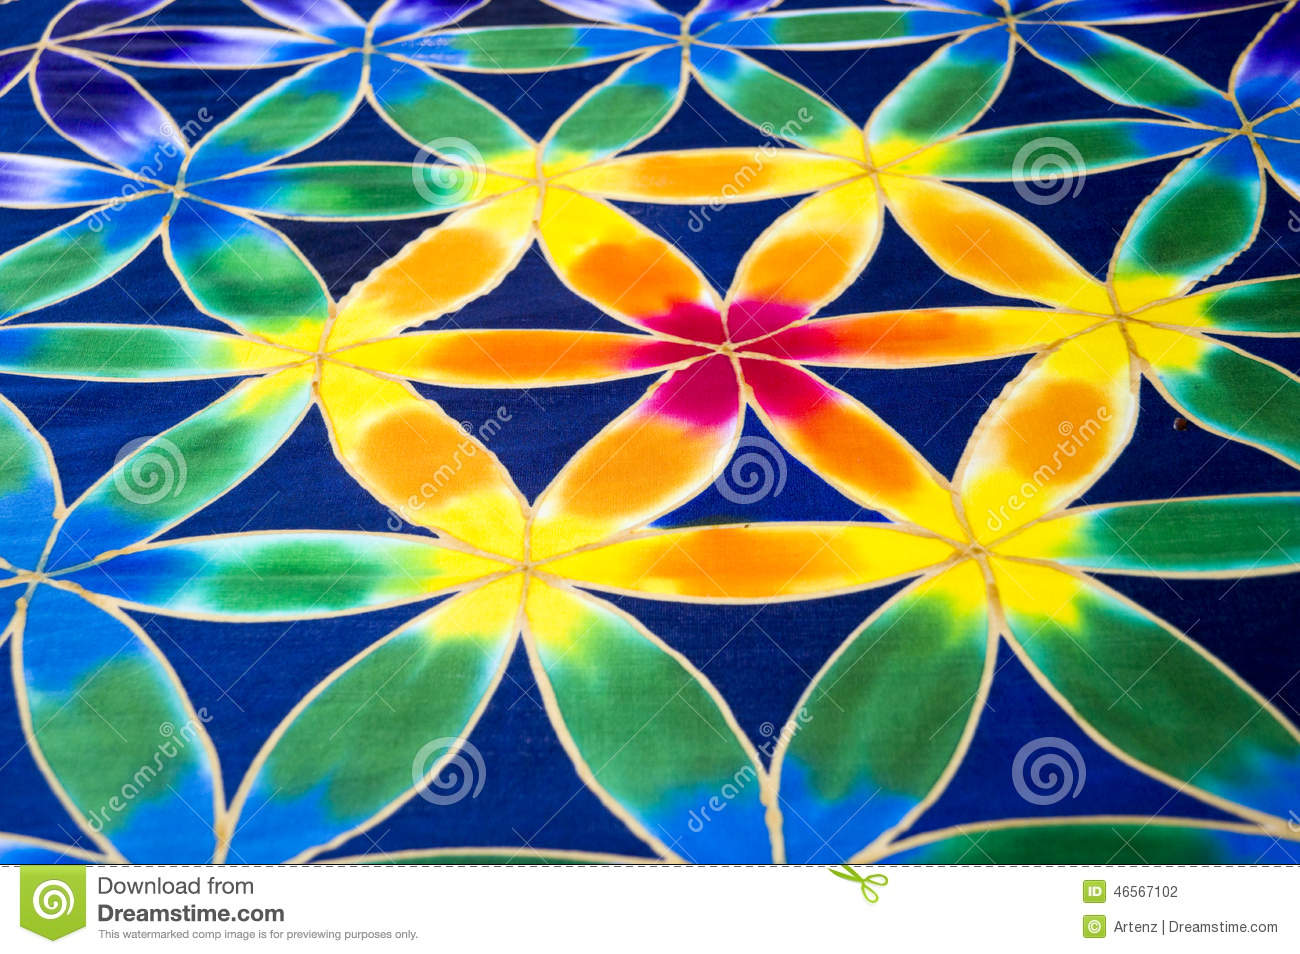 download batik muster stockfoto bild von blume auslegung decorate 46567102 - Batiken Muster